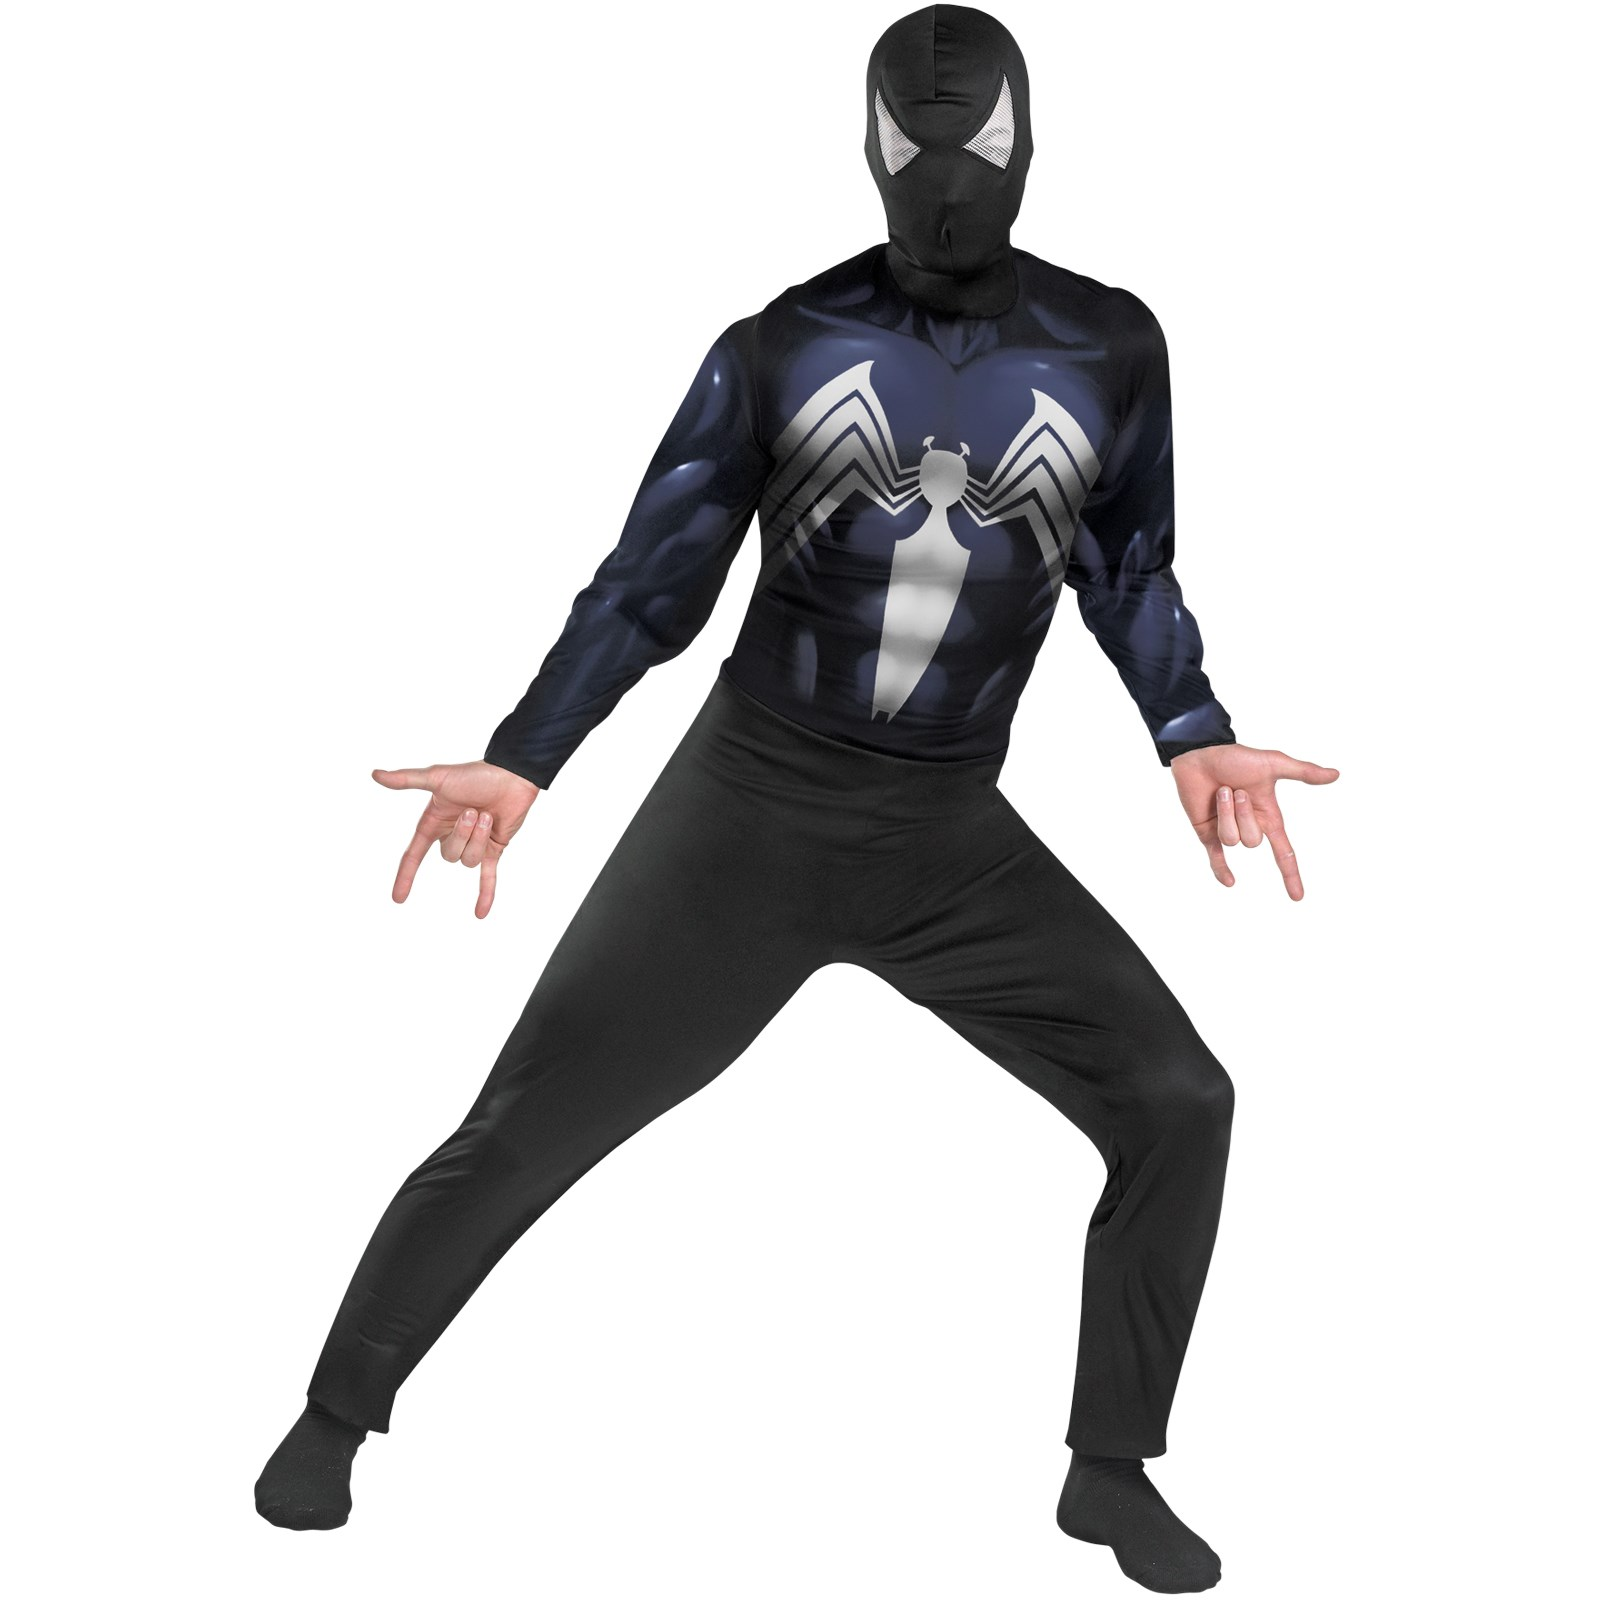 The Amazing Spider-Man Black-Suited Spider-Man Adult Costume